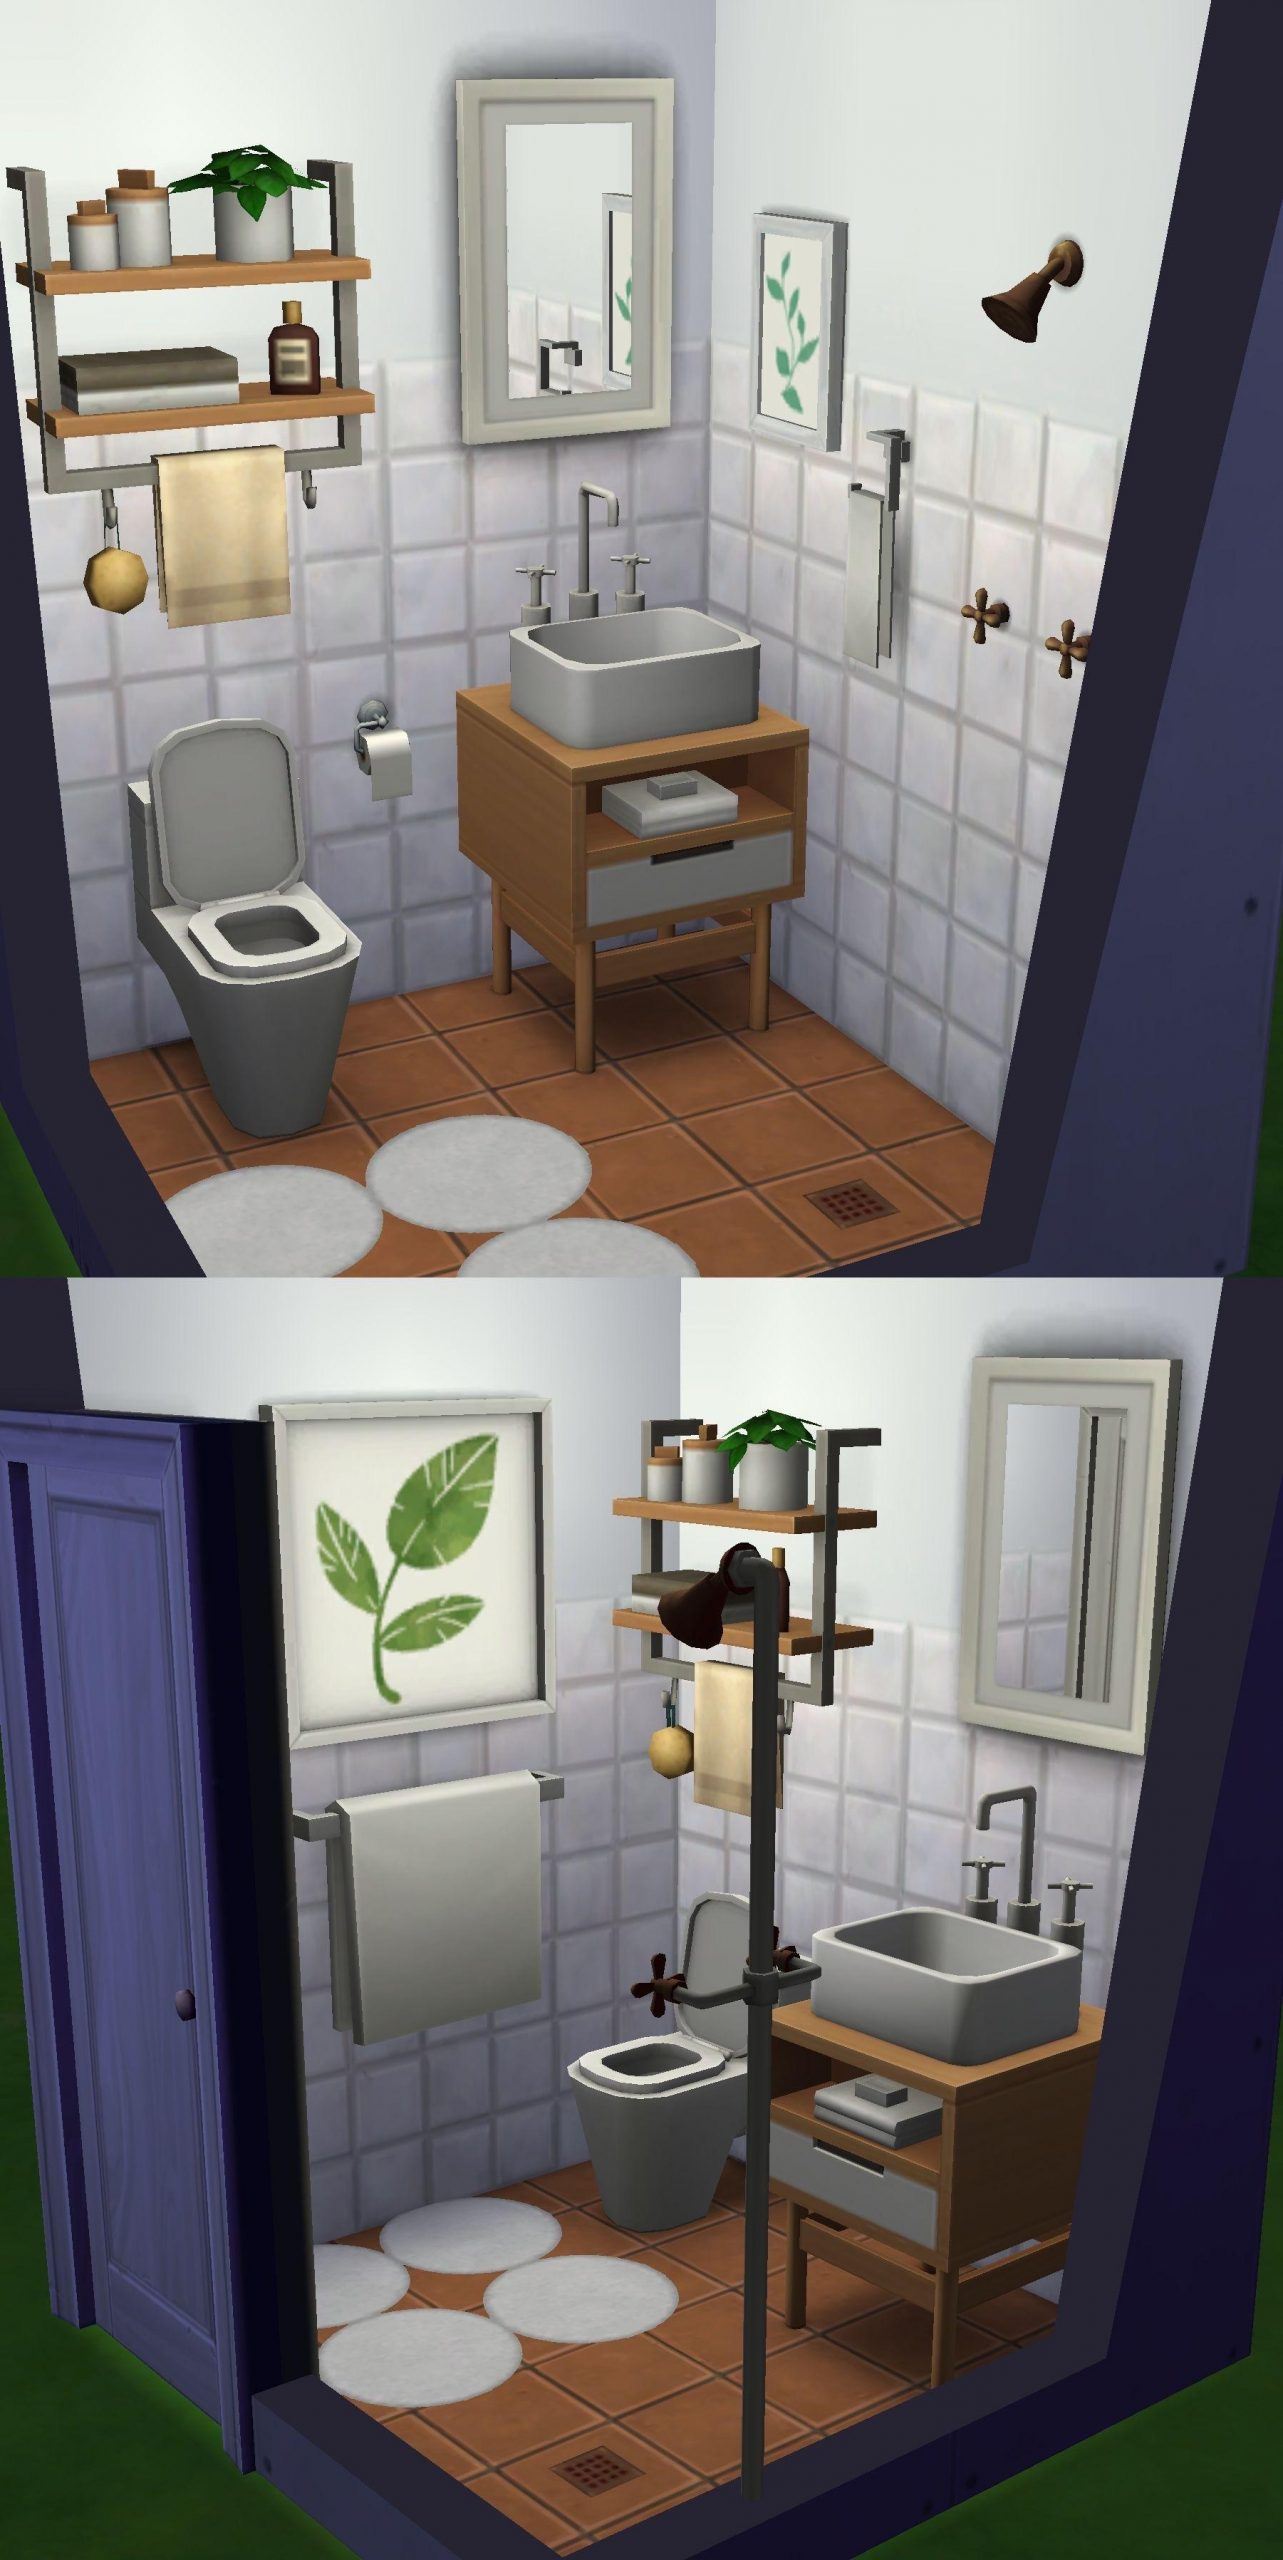 For Those Who Want A Small Bathroom Without It Looking Like 40+ Sims Bathroom Ideas